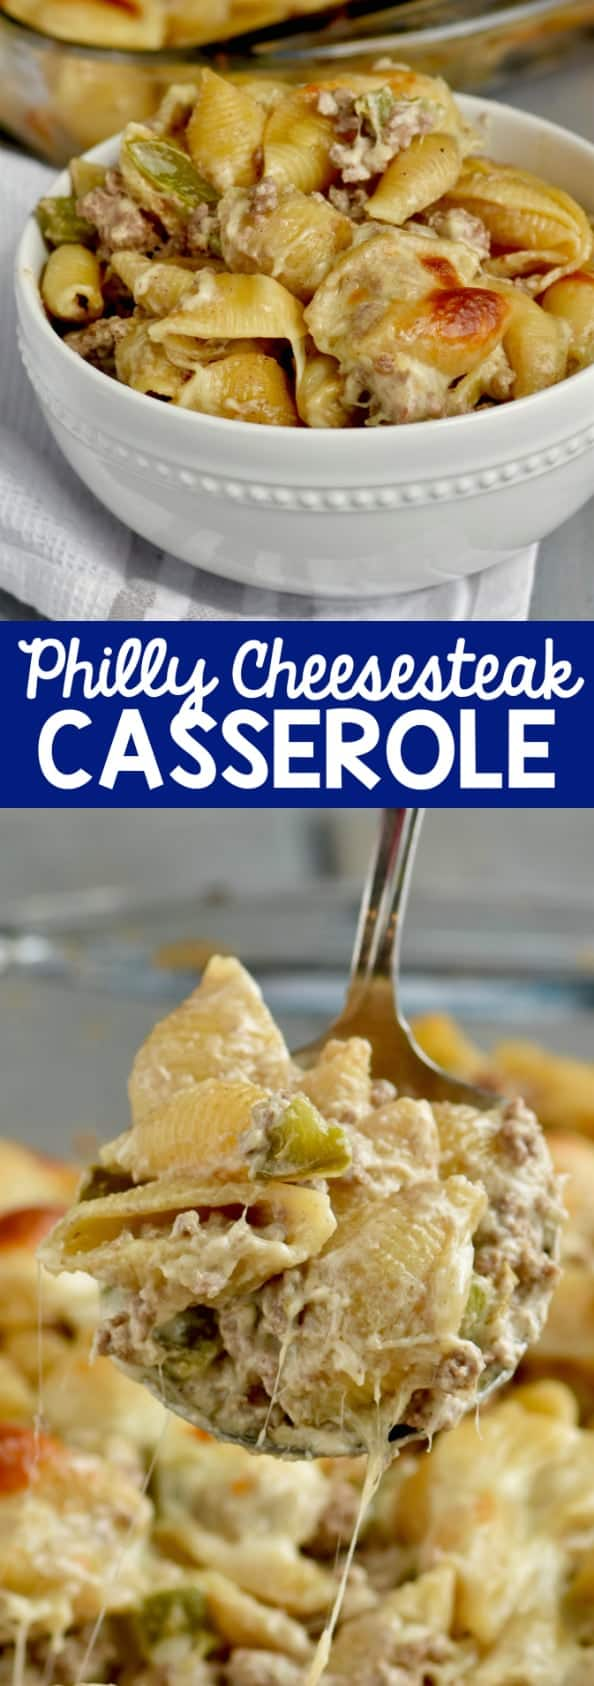 This Philly Cheese Steak Casserole is such an easy delicious dinner!